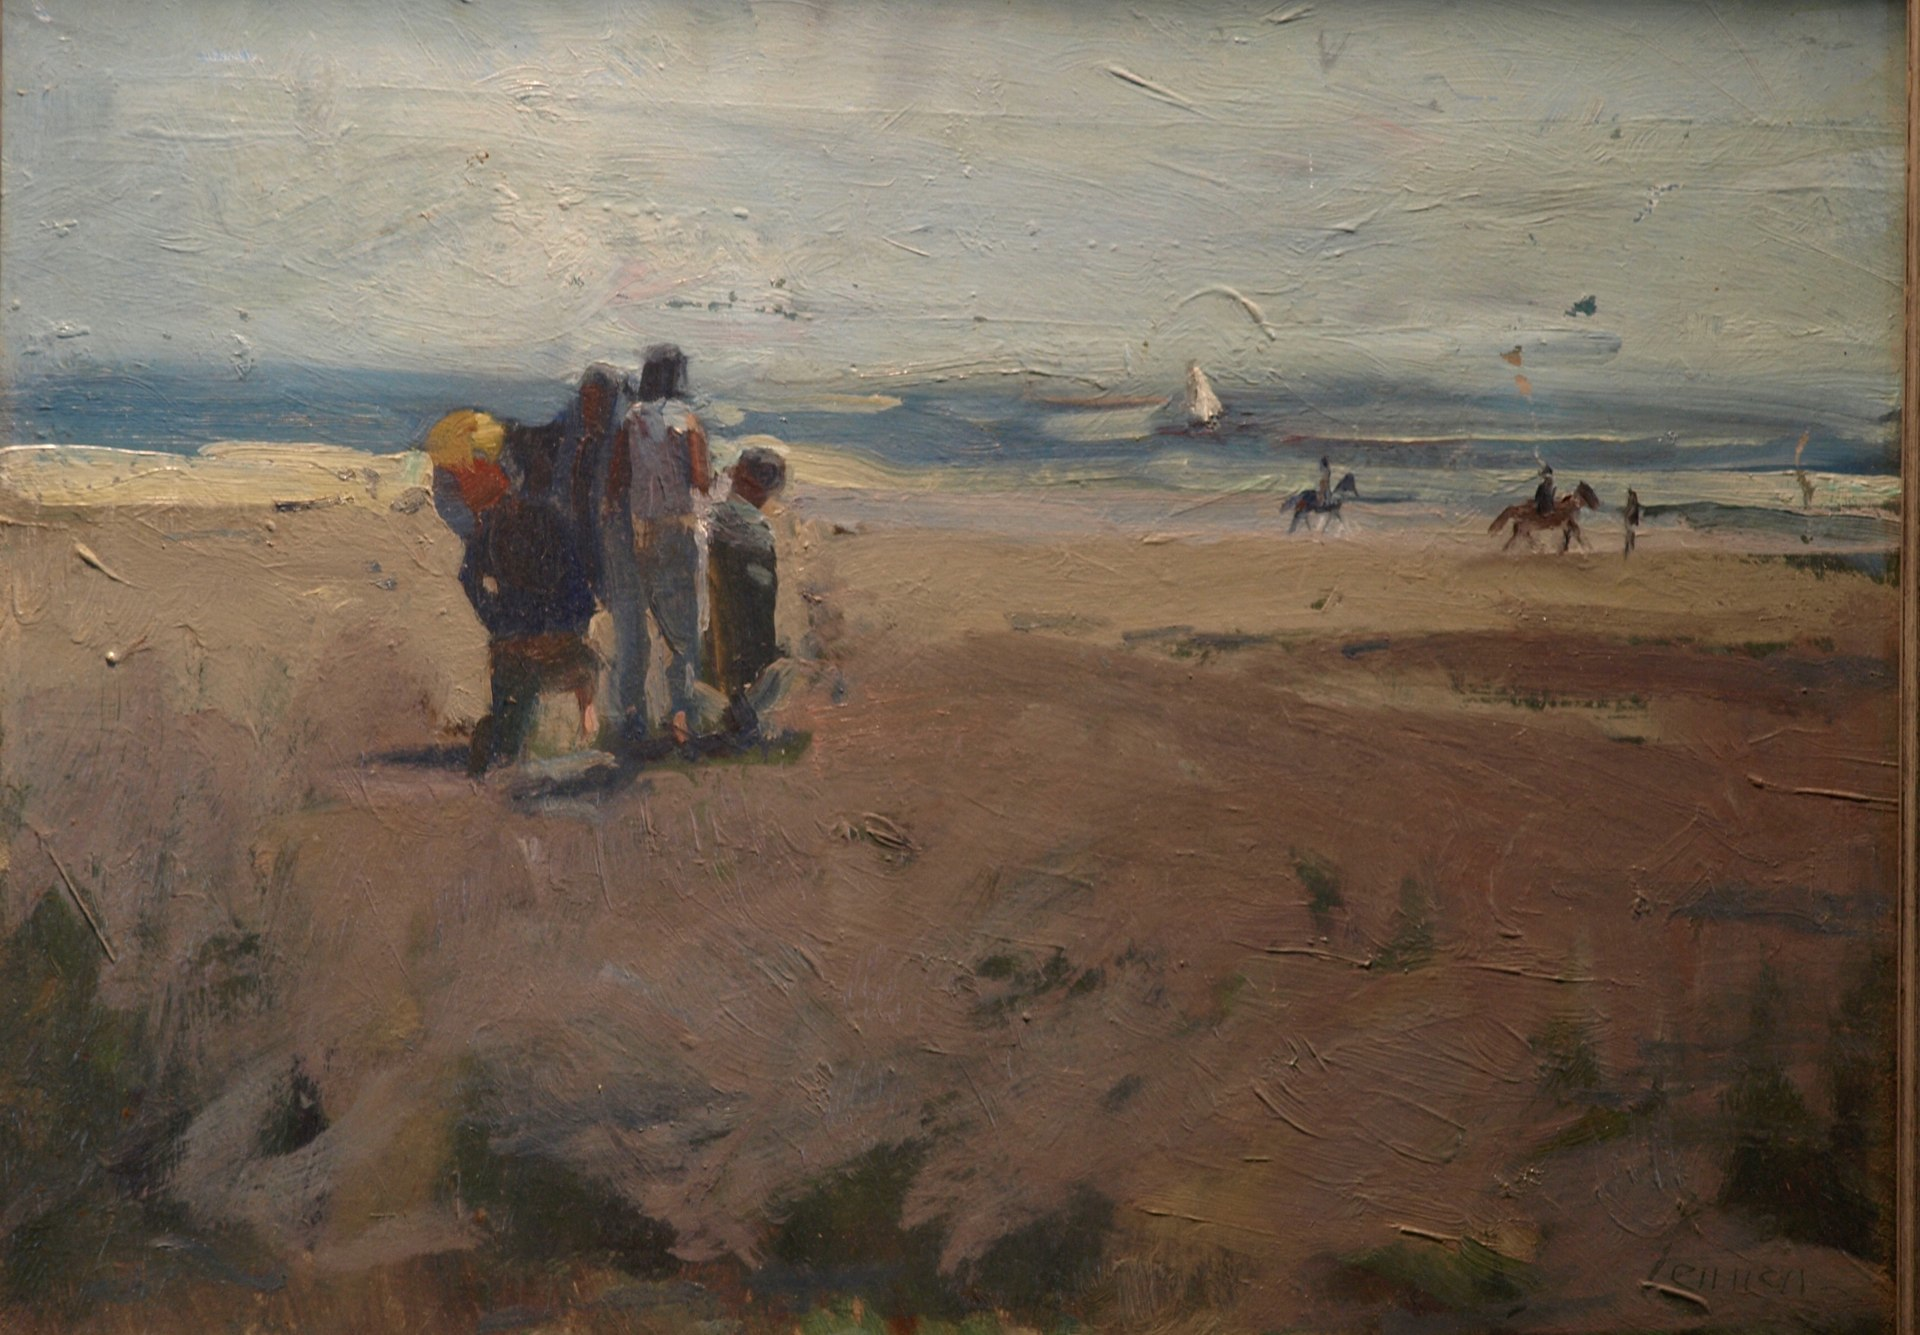 Day at the Beach, Oil on Canvas, 14 x 18 Inches, by Bernard Lennon, $375